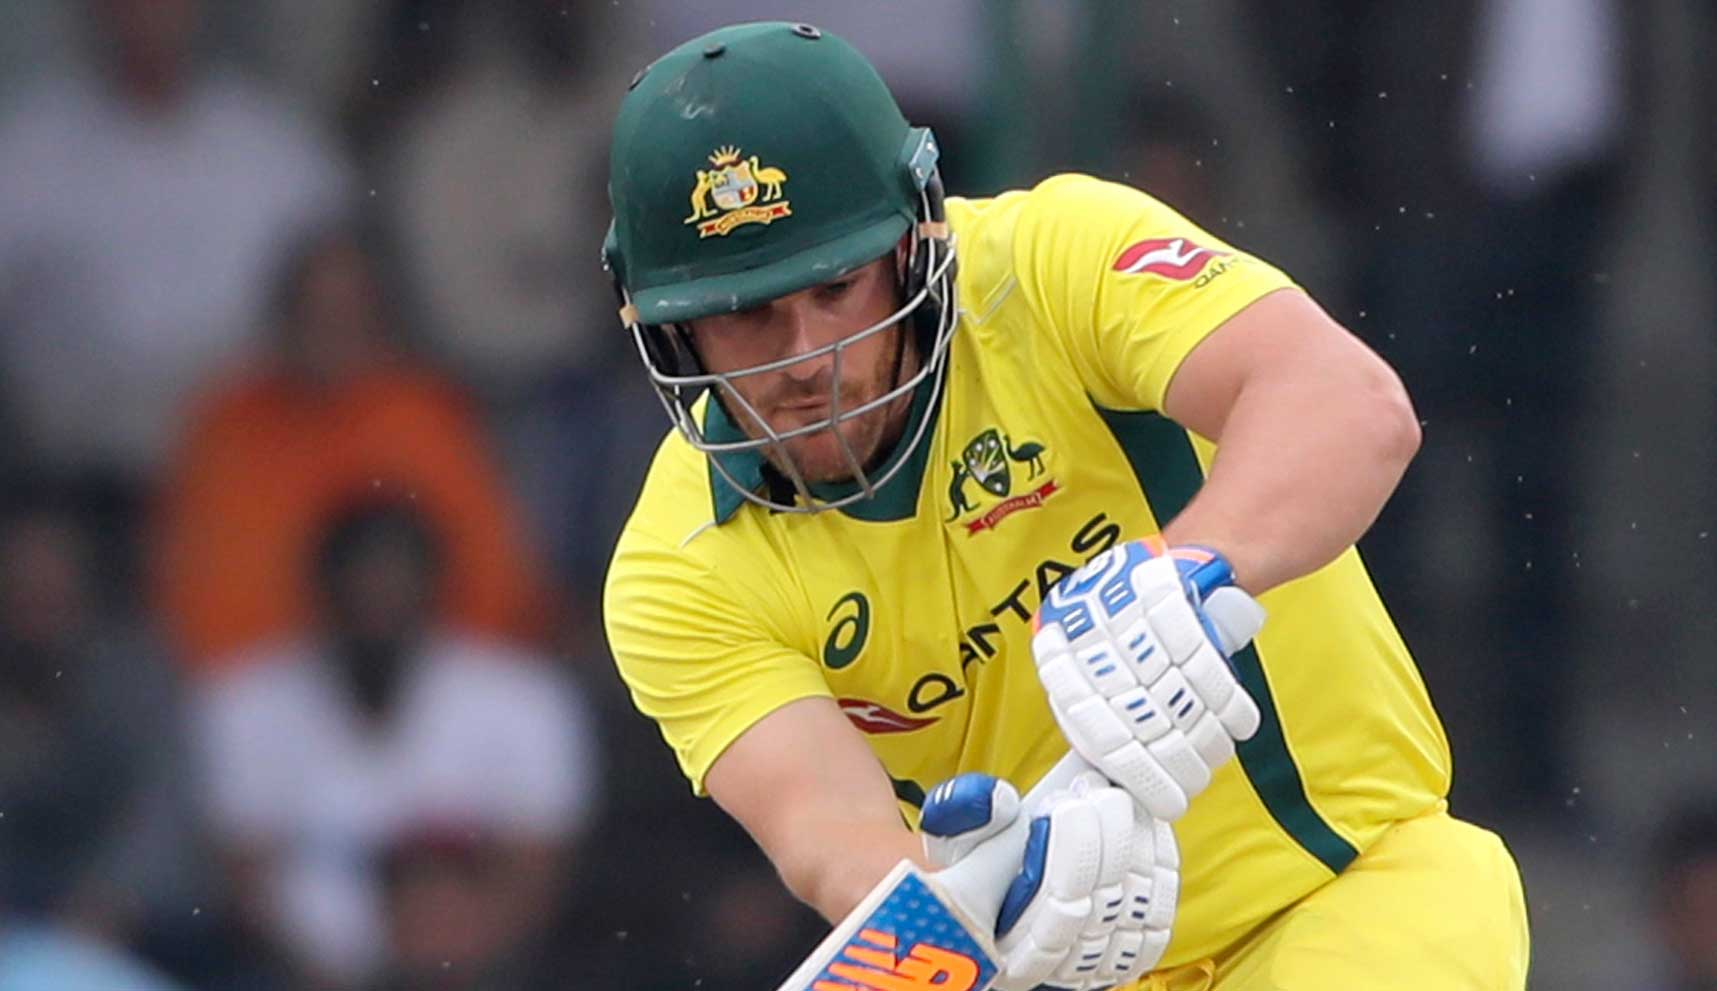 Aaron Finch plays a shot during the final ODI match between India and Australia in New Delhi, India, on March 13, 2019.